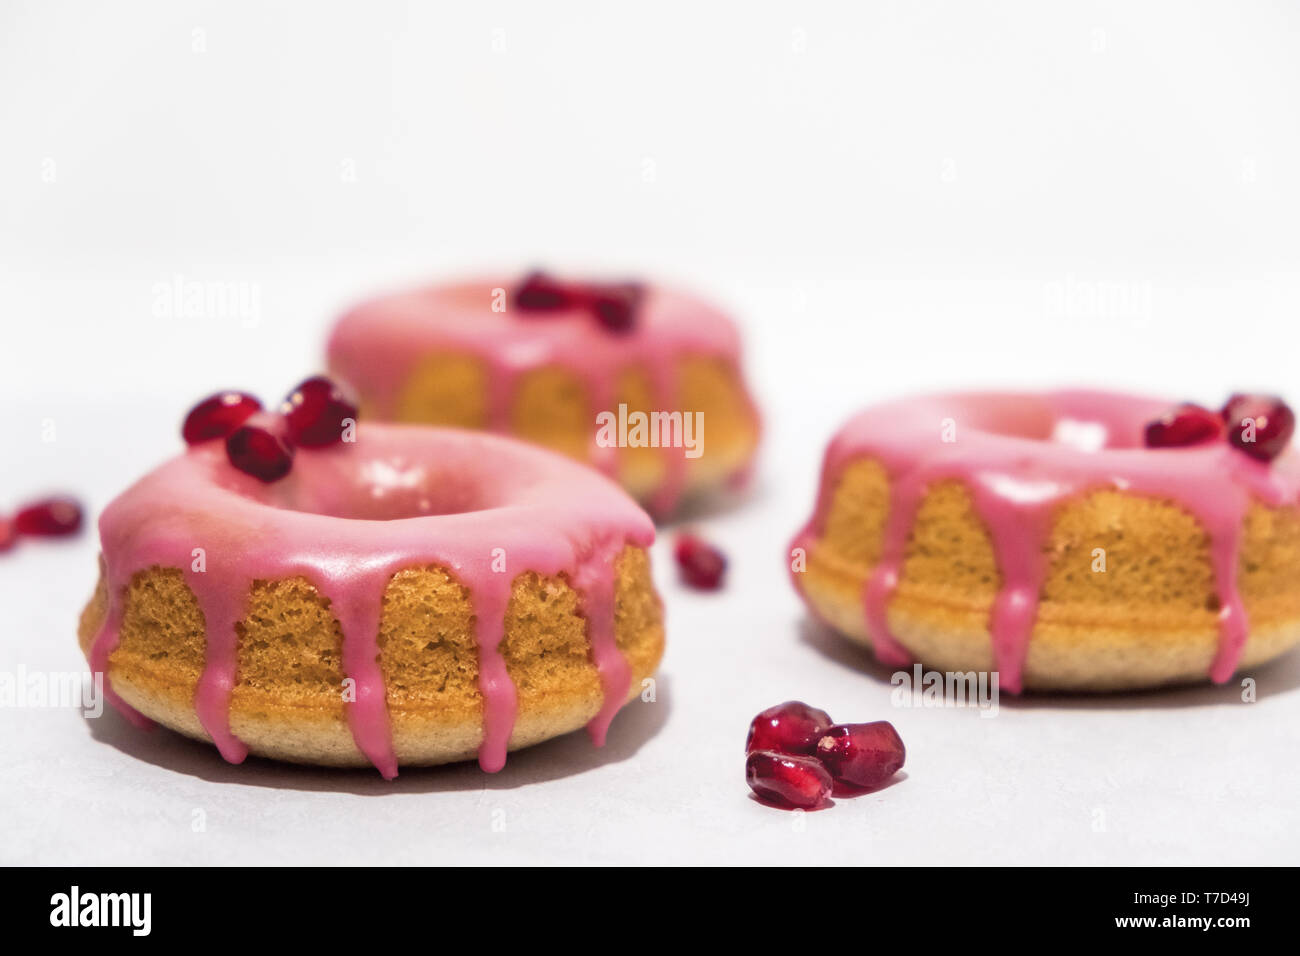 Golden Doughnuts with Dripping Pink Pomegranate Glaze and Fresh Pomegranate Seeds - Stock Image